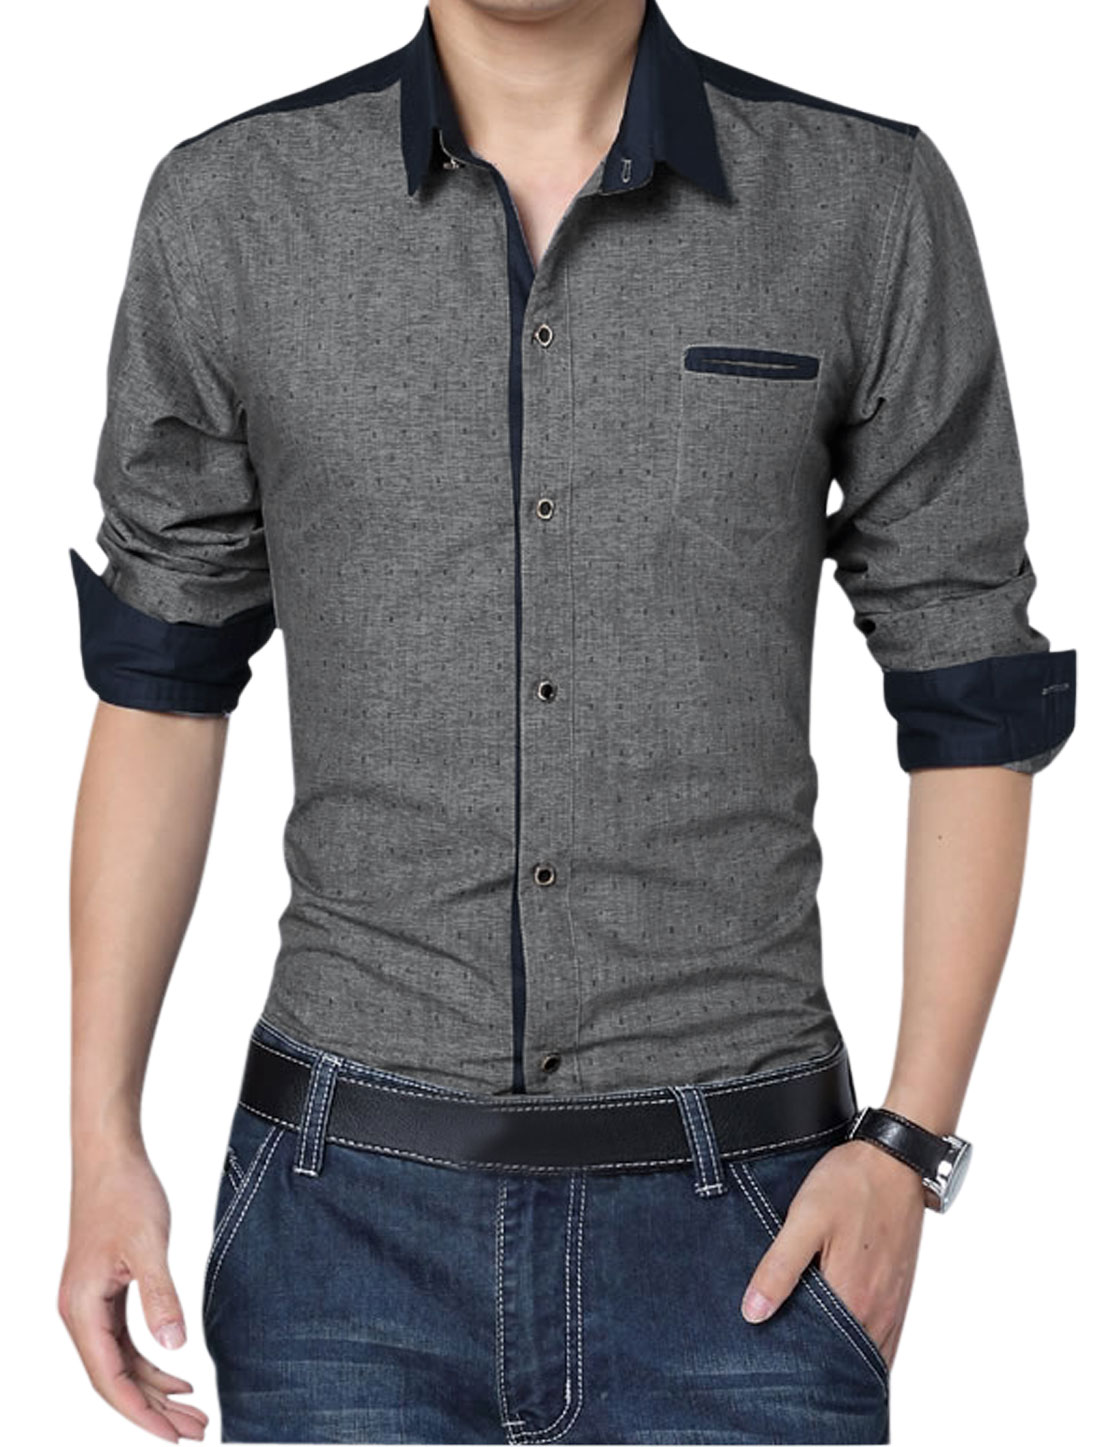 Men Point Collar Single Breasted Anchor Pirnts Leisure Shirt Dark Gray L